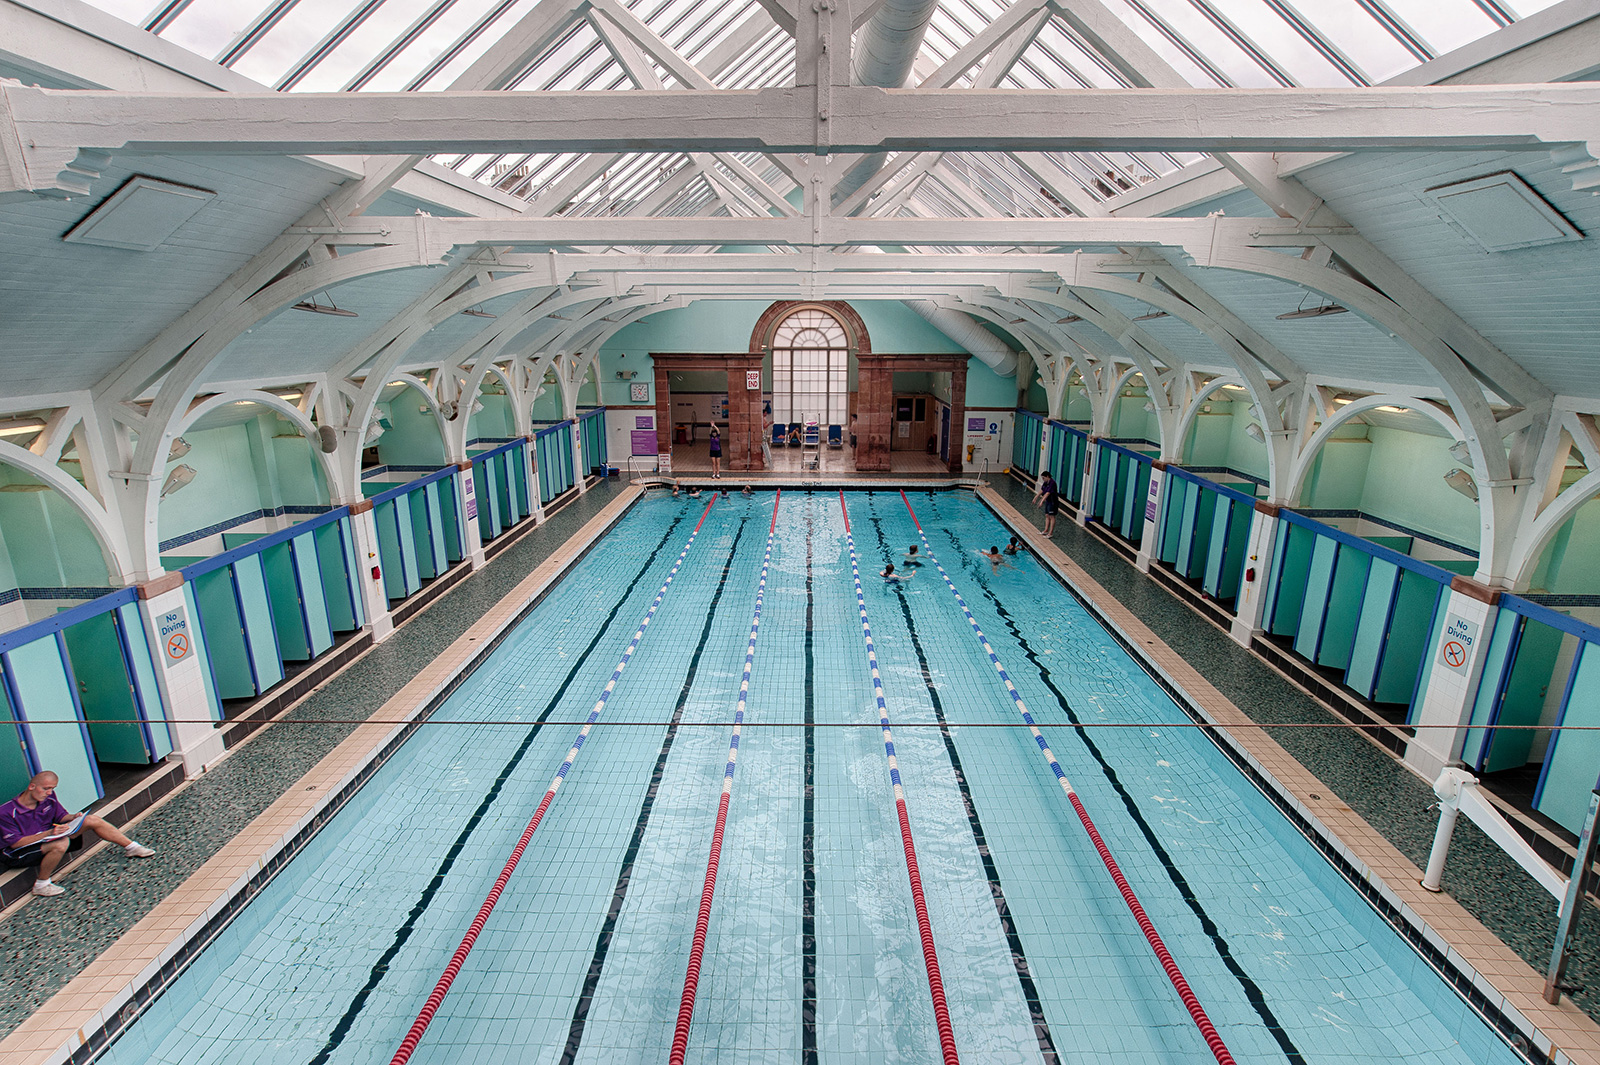 British swimming pools - Warrender pool